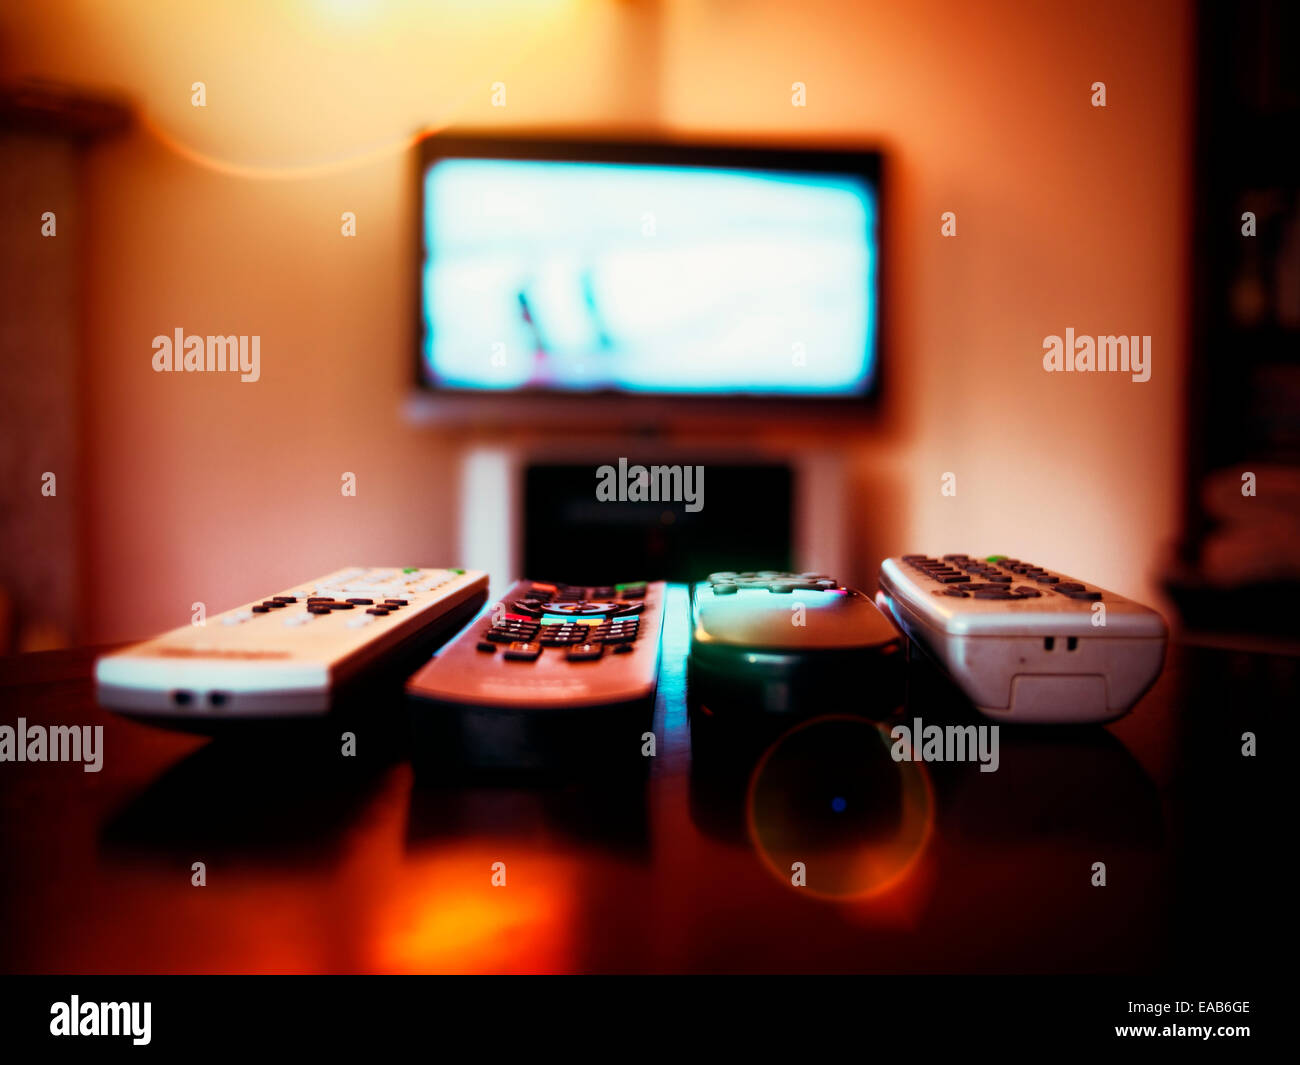 Four remote control devices and tv - Stock Image